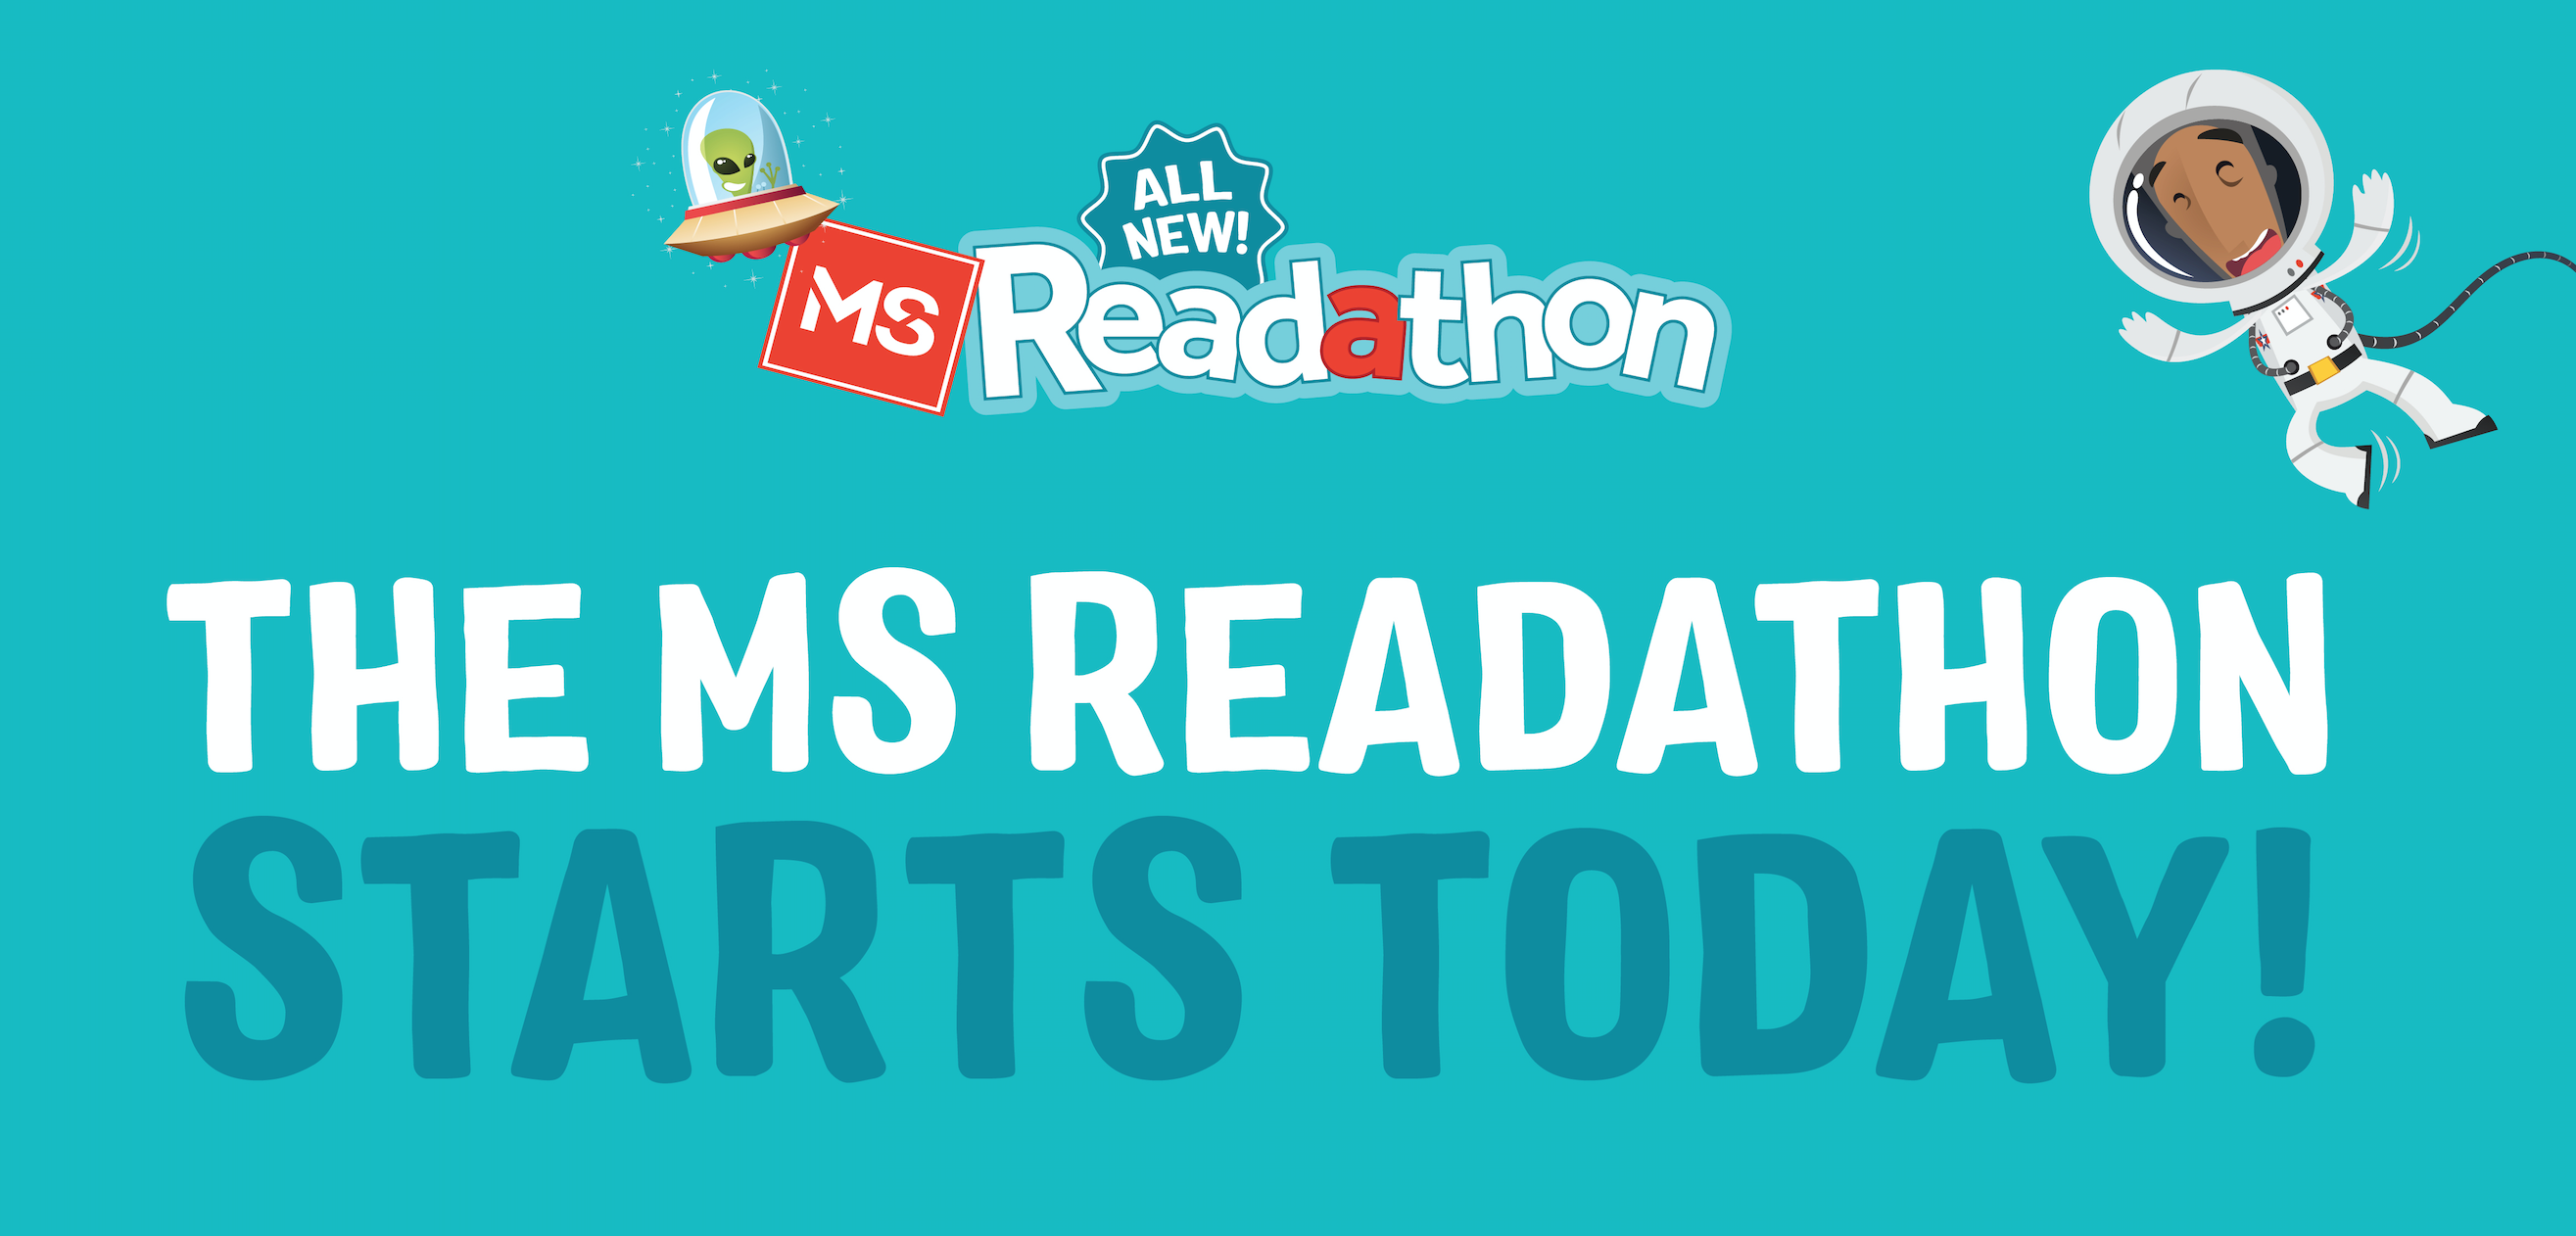 Facebook Tile - The MS Readathon starts today!